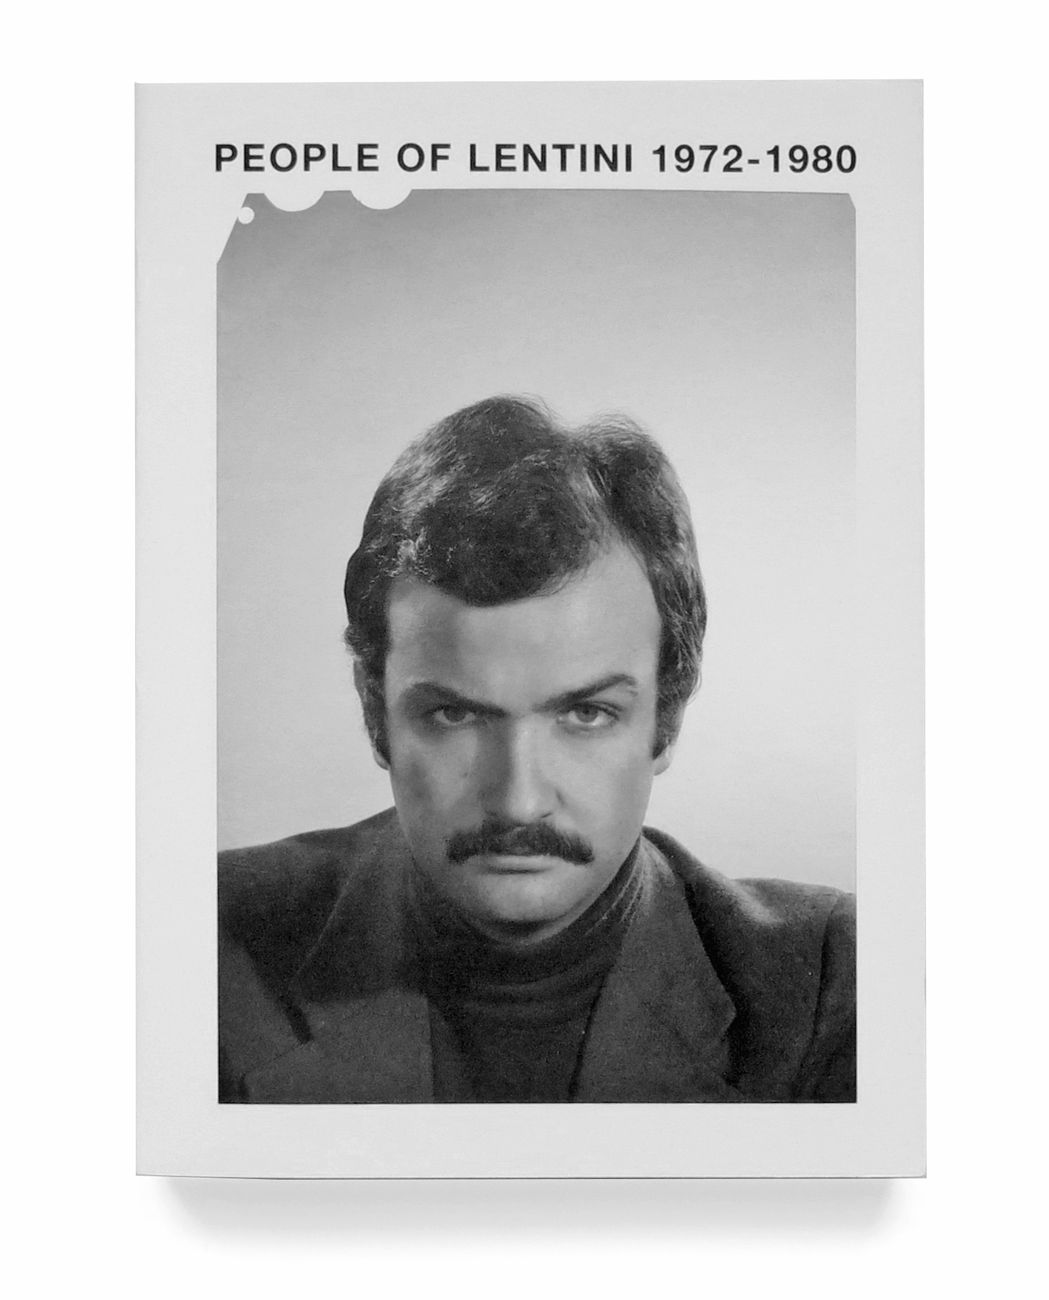 People of Lentini. Self image culture, 1972-1980 (a+m bookstore Edizioni, Milano 2017)